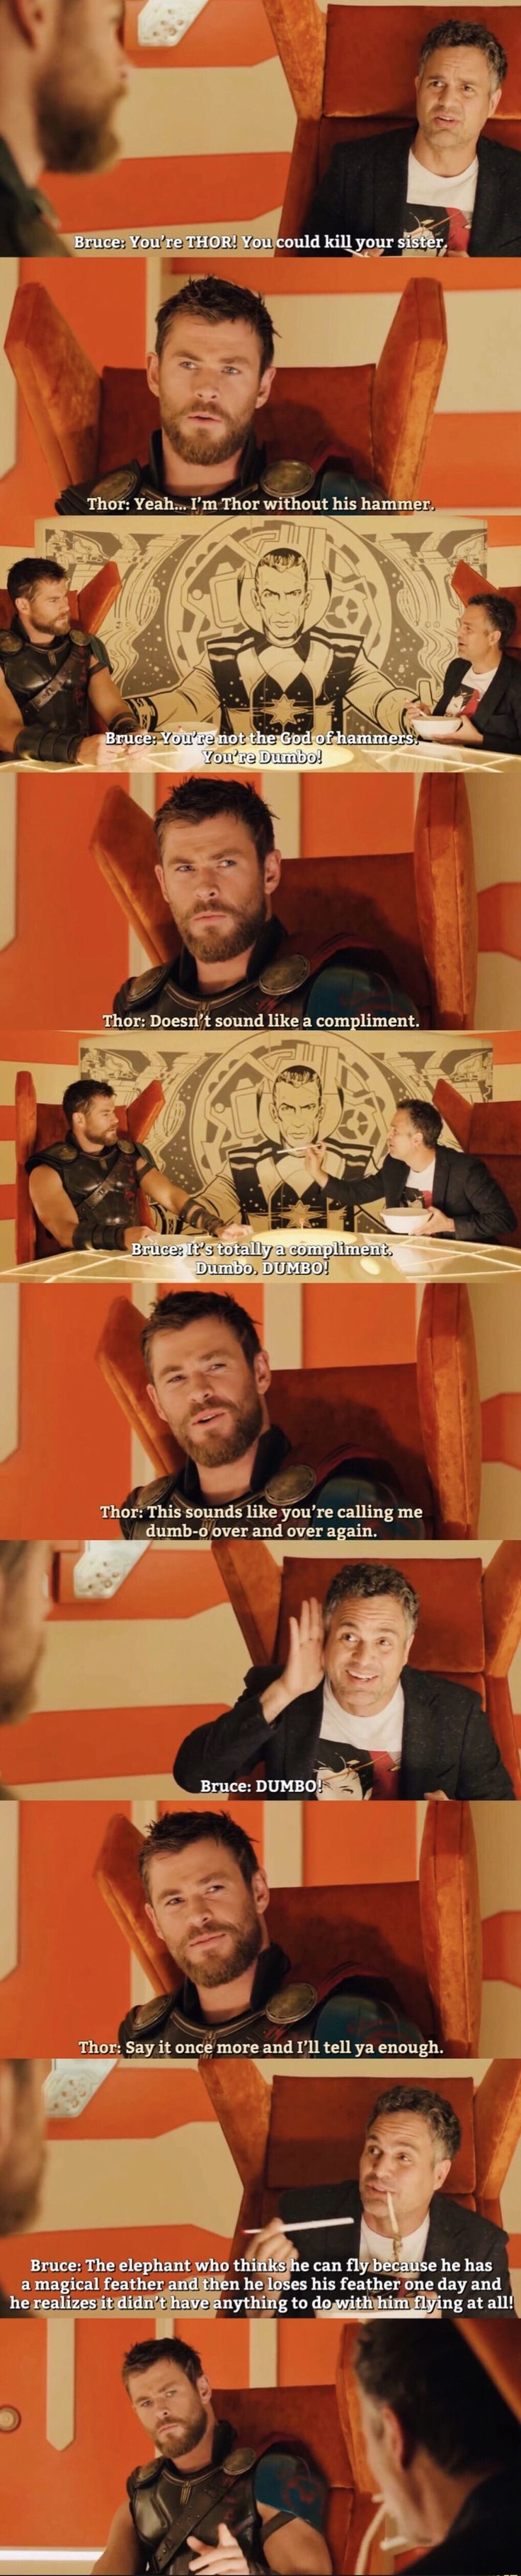 "Except it's ""Say it once more and I'll rip your head off "" Thor: Ragnarok deleted scene"